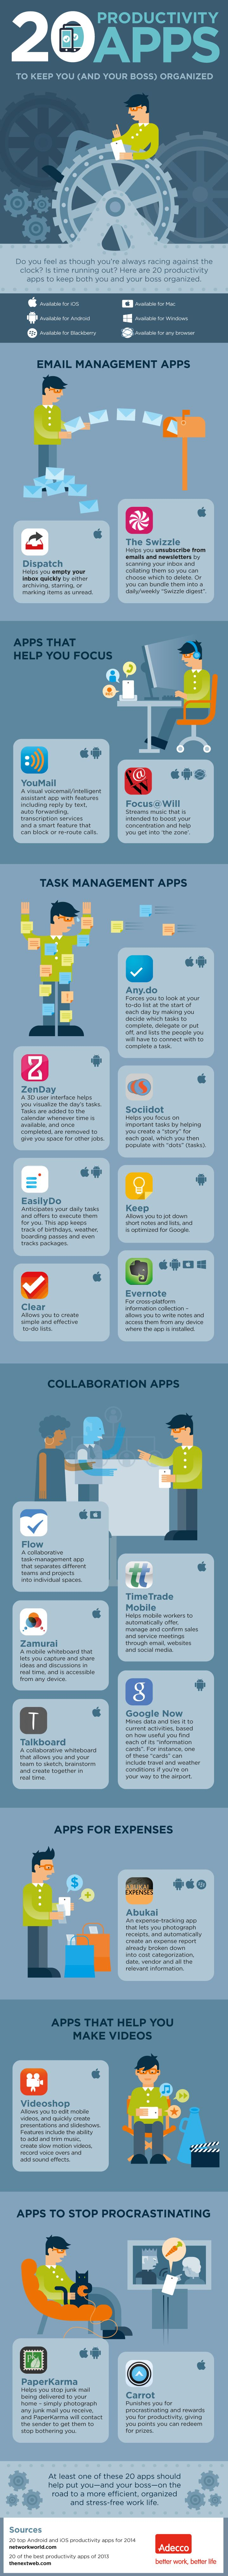 20 Productivity Apps To Keep You (And Your Boss) Organized #infographic